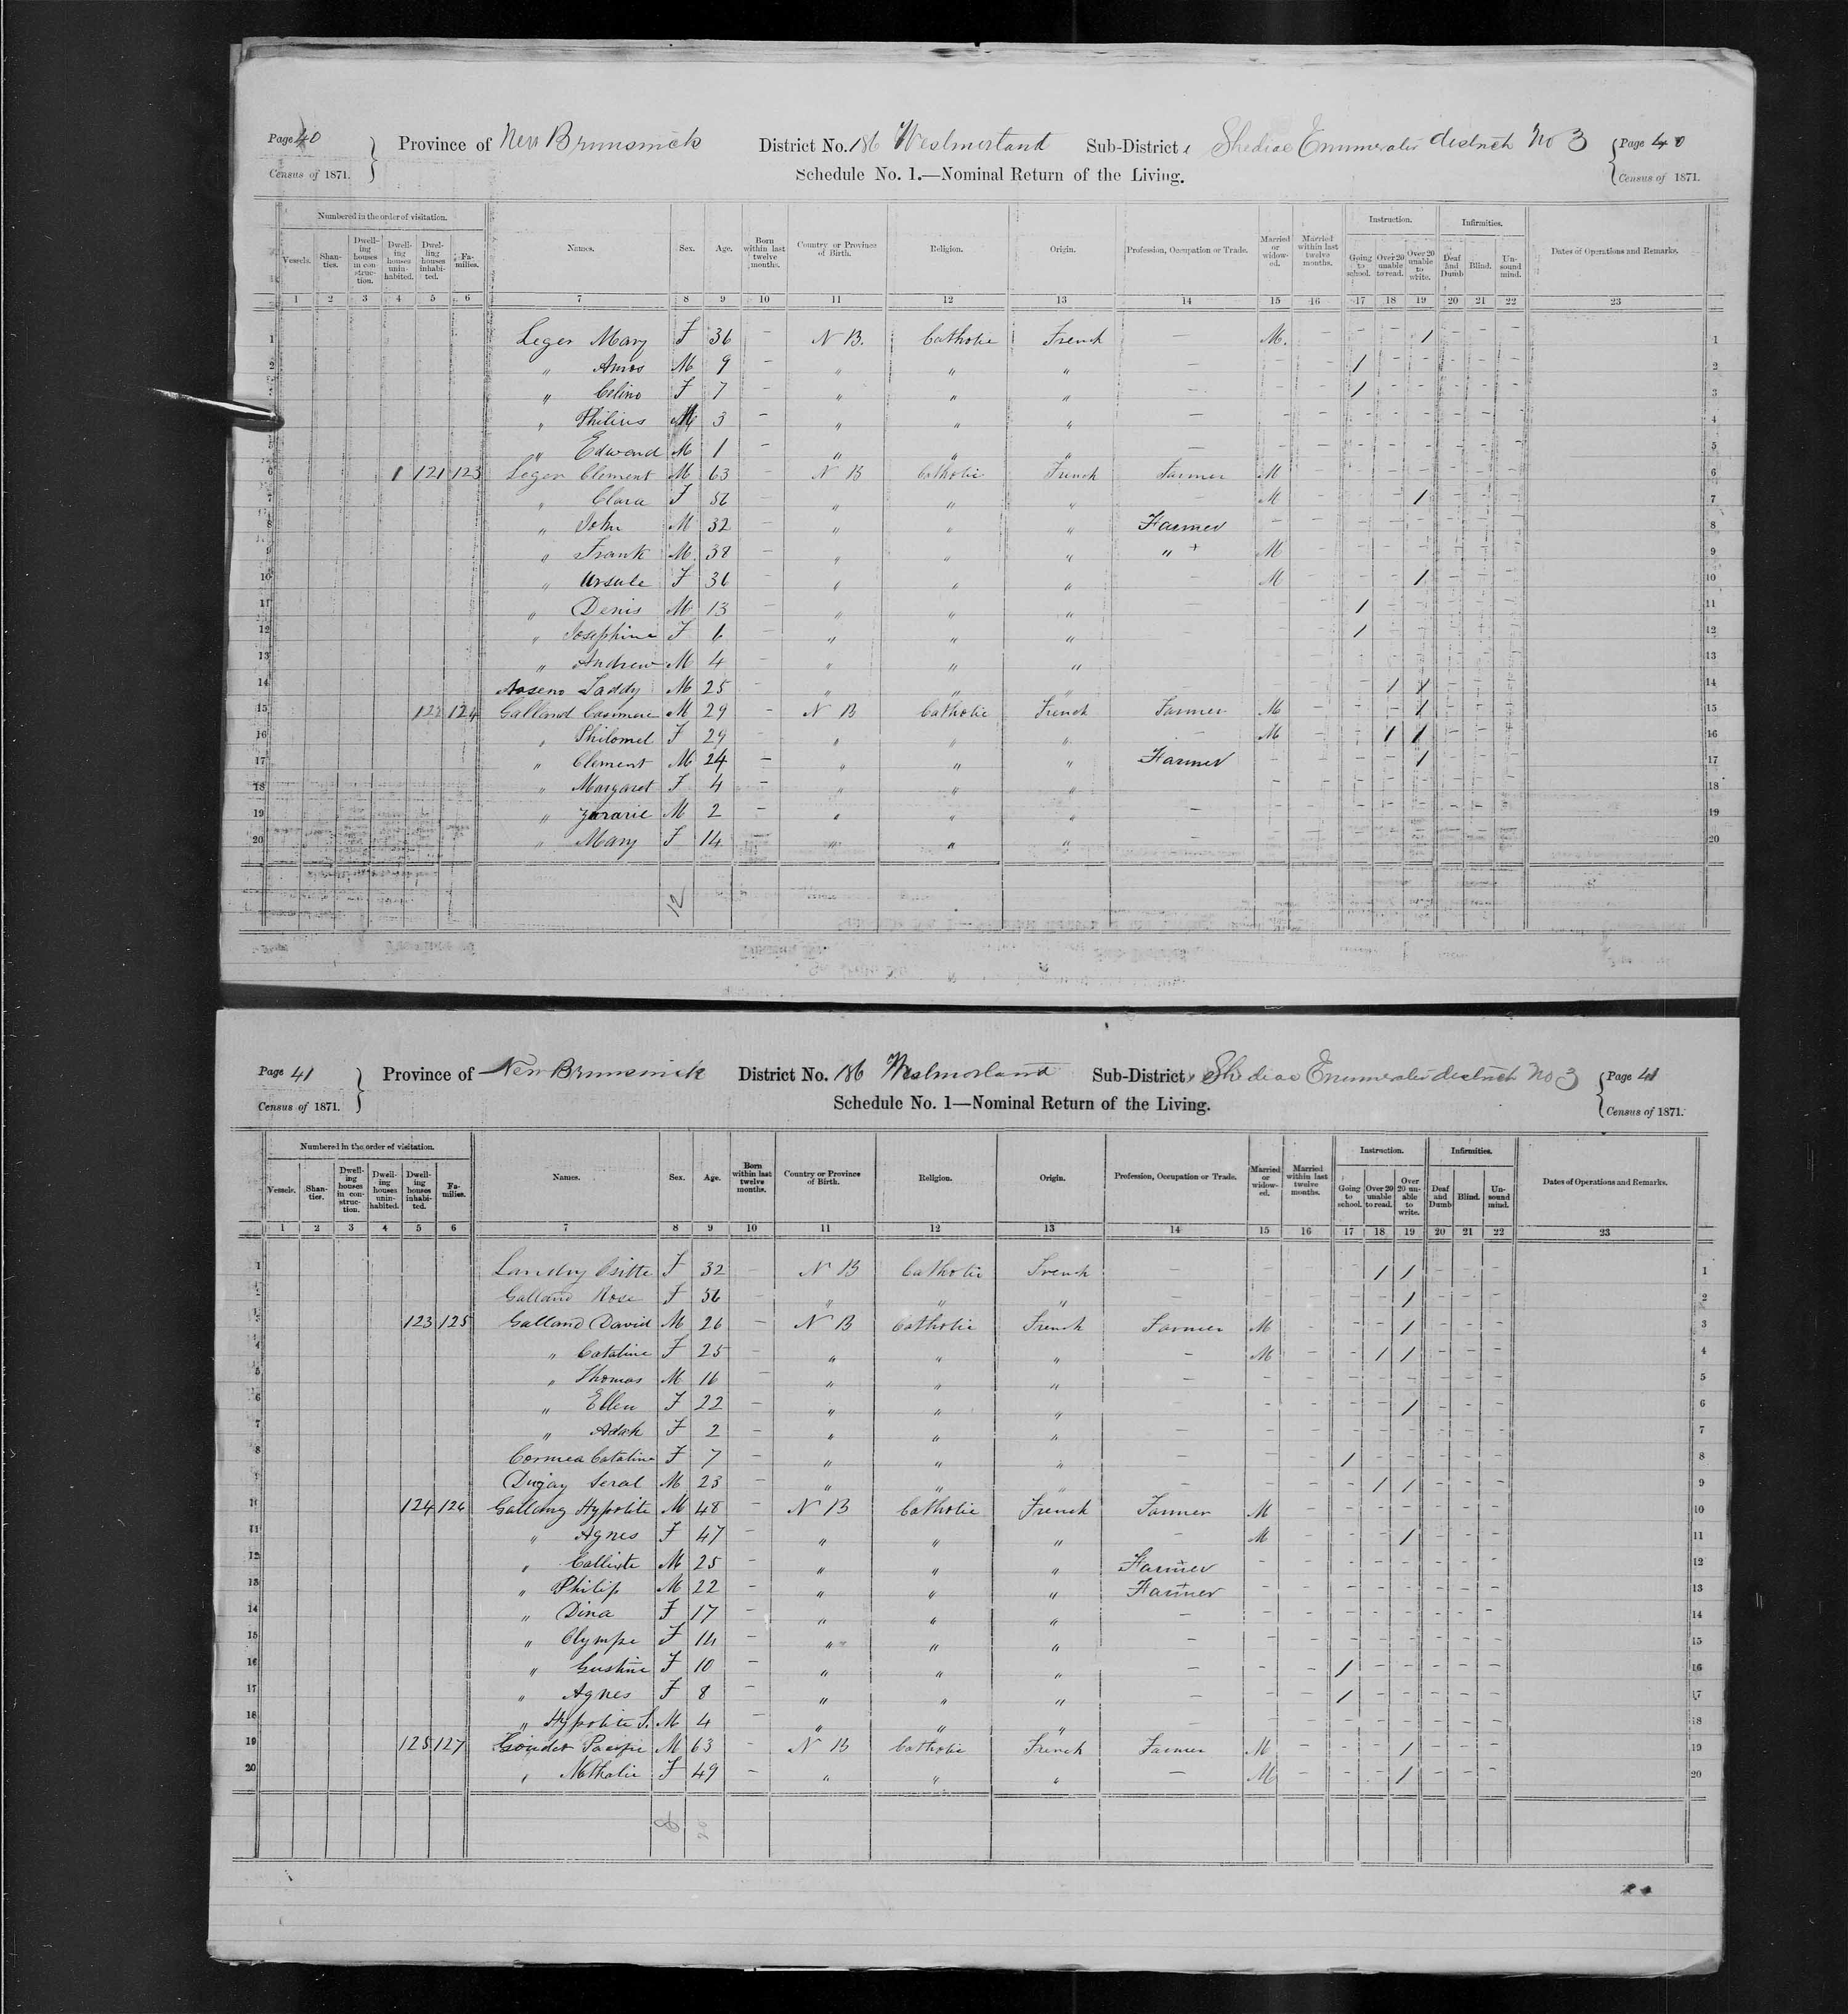 Digitized page of Census of Canada, 1871, Page number 41, for Hypolite Gallomy